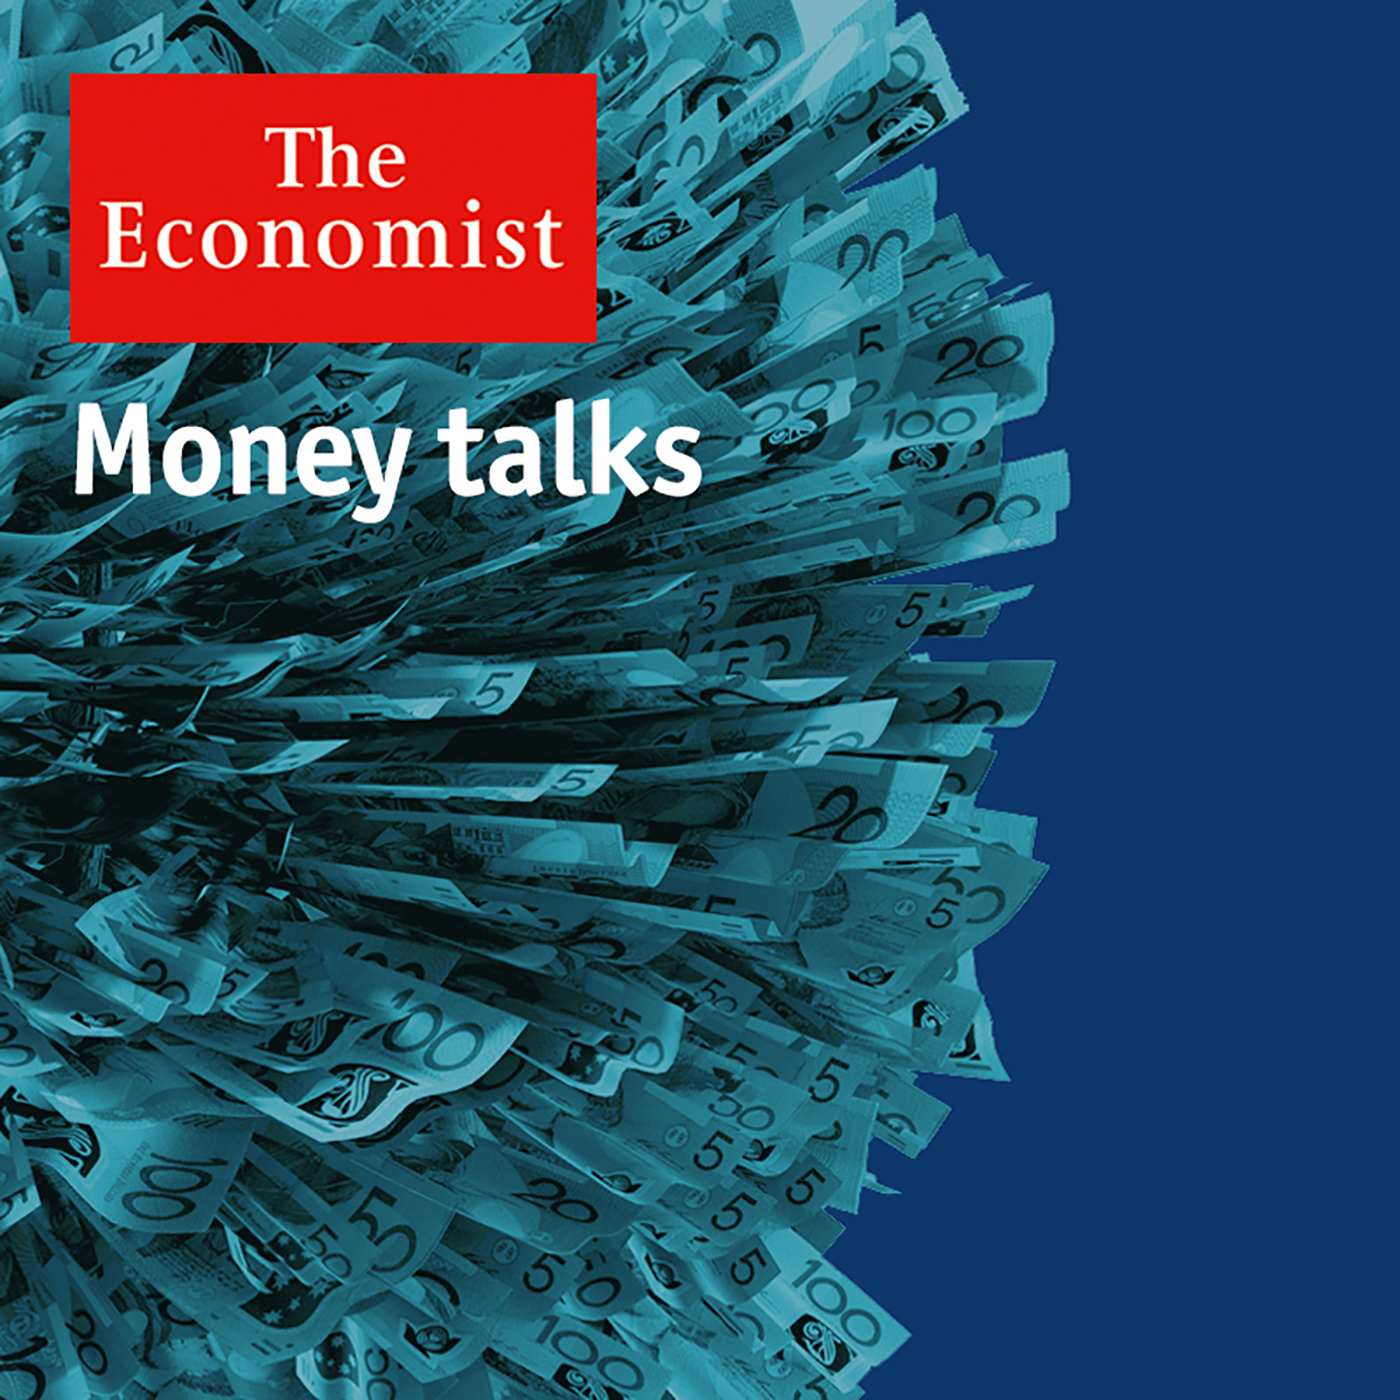 the economist money talks podcast feed image